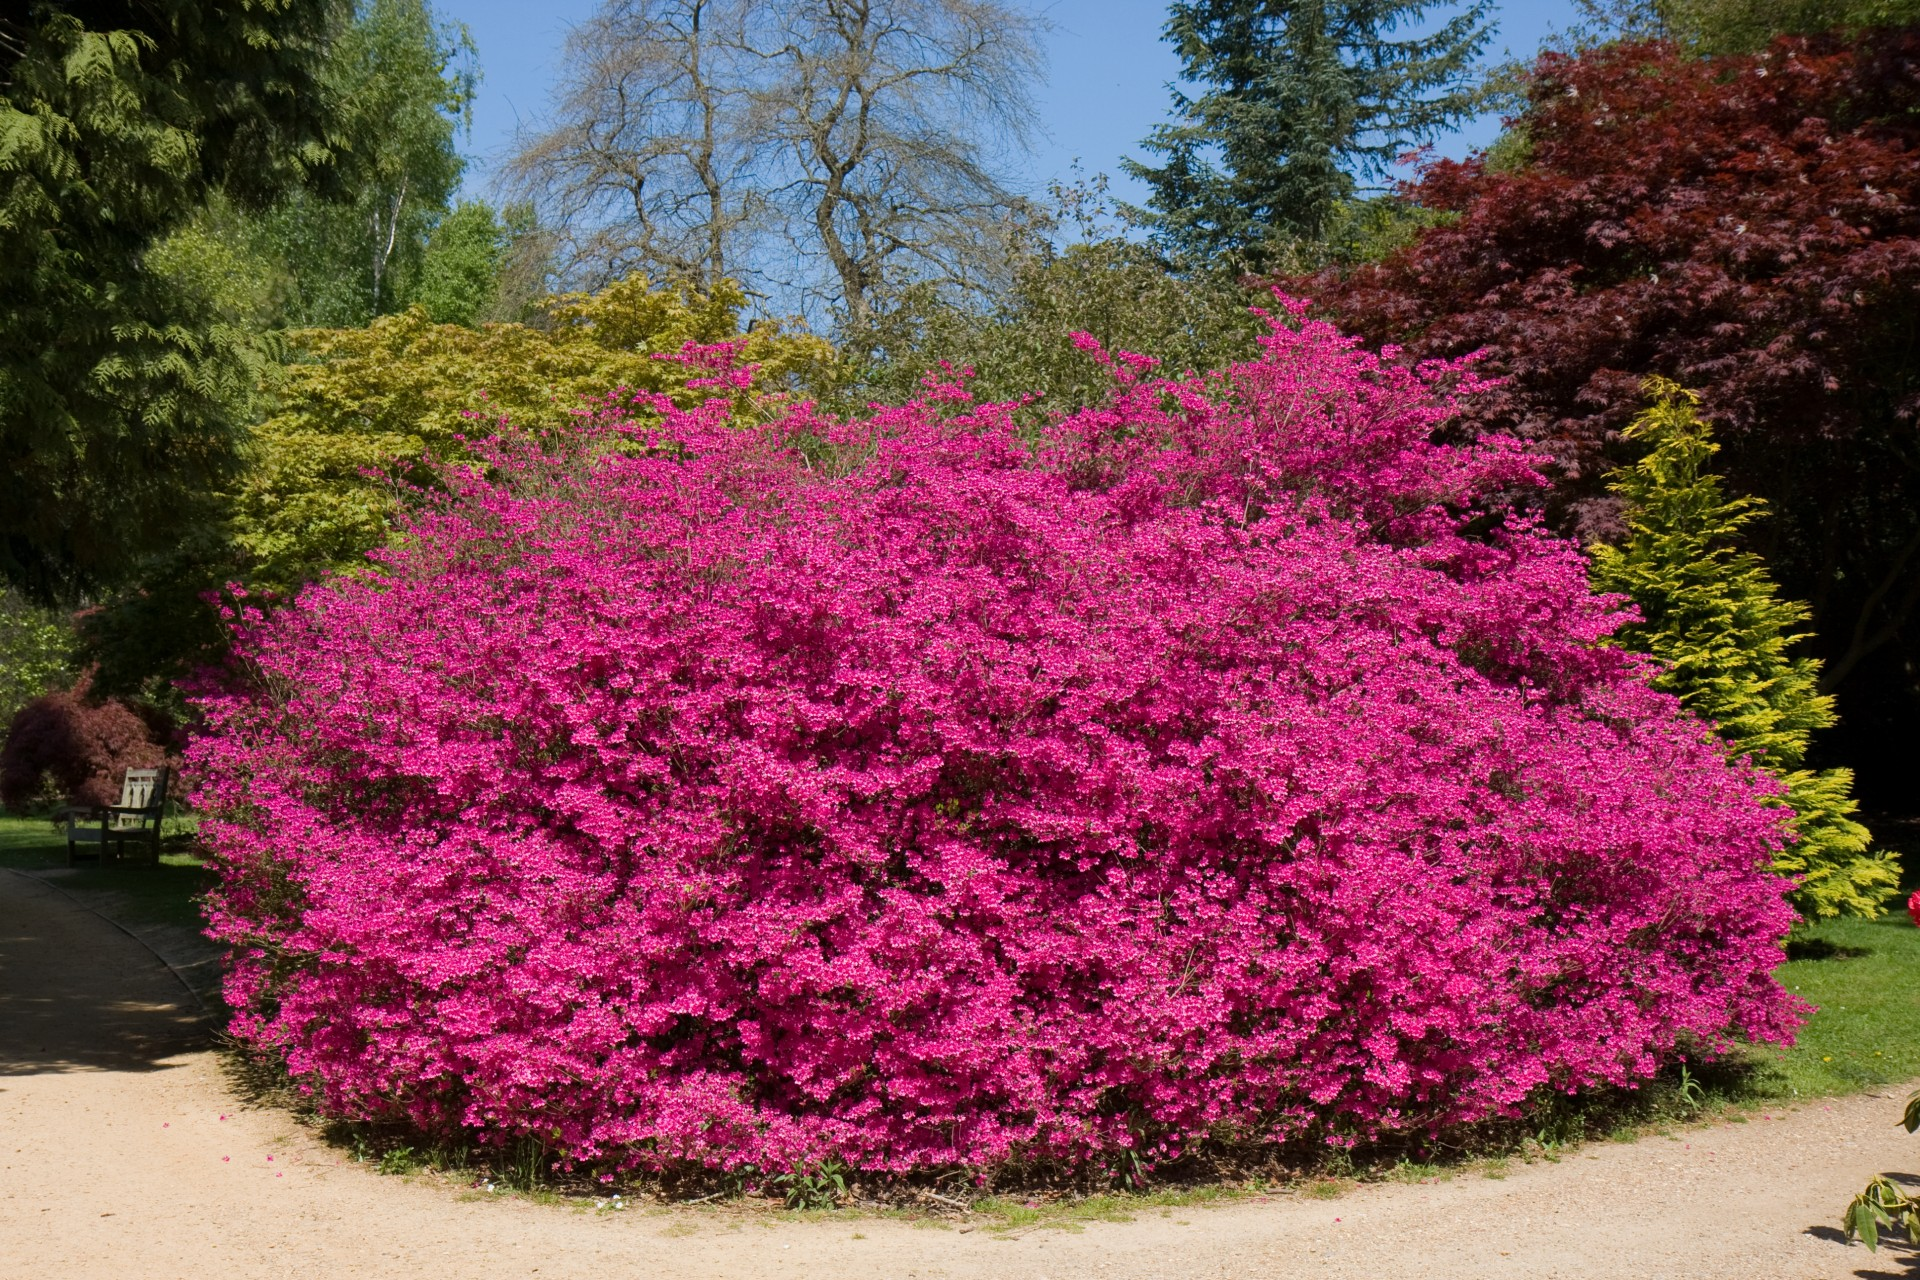 Pink flowering bushes and shrubs 6 cool wallpaper for Pink flowering shrubs